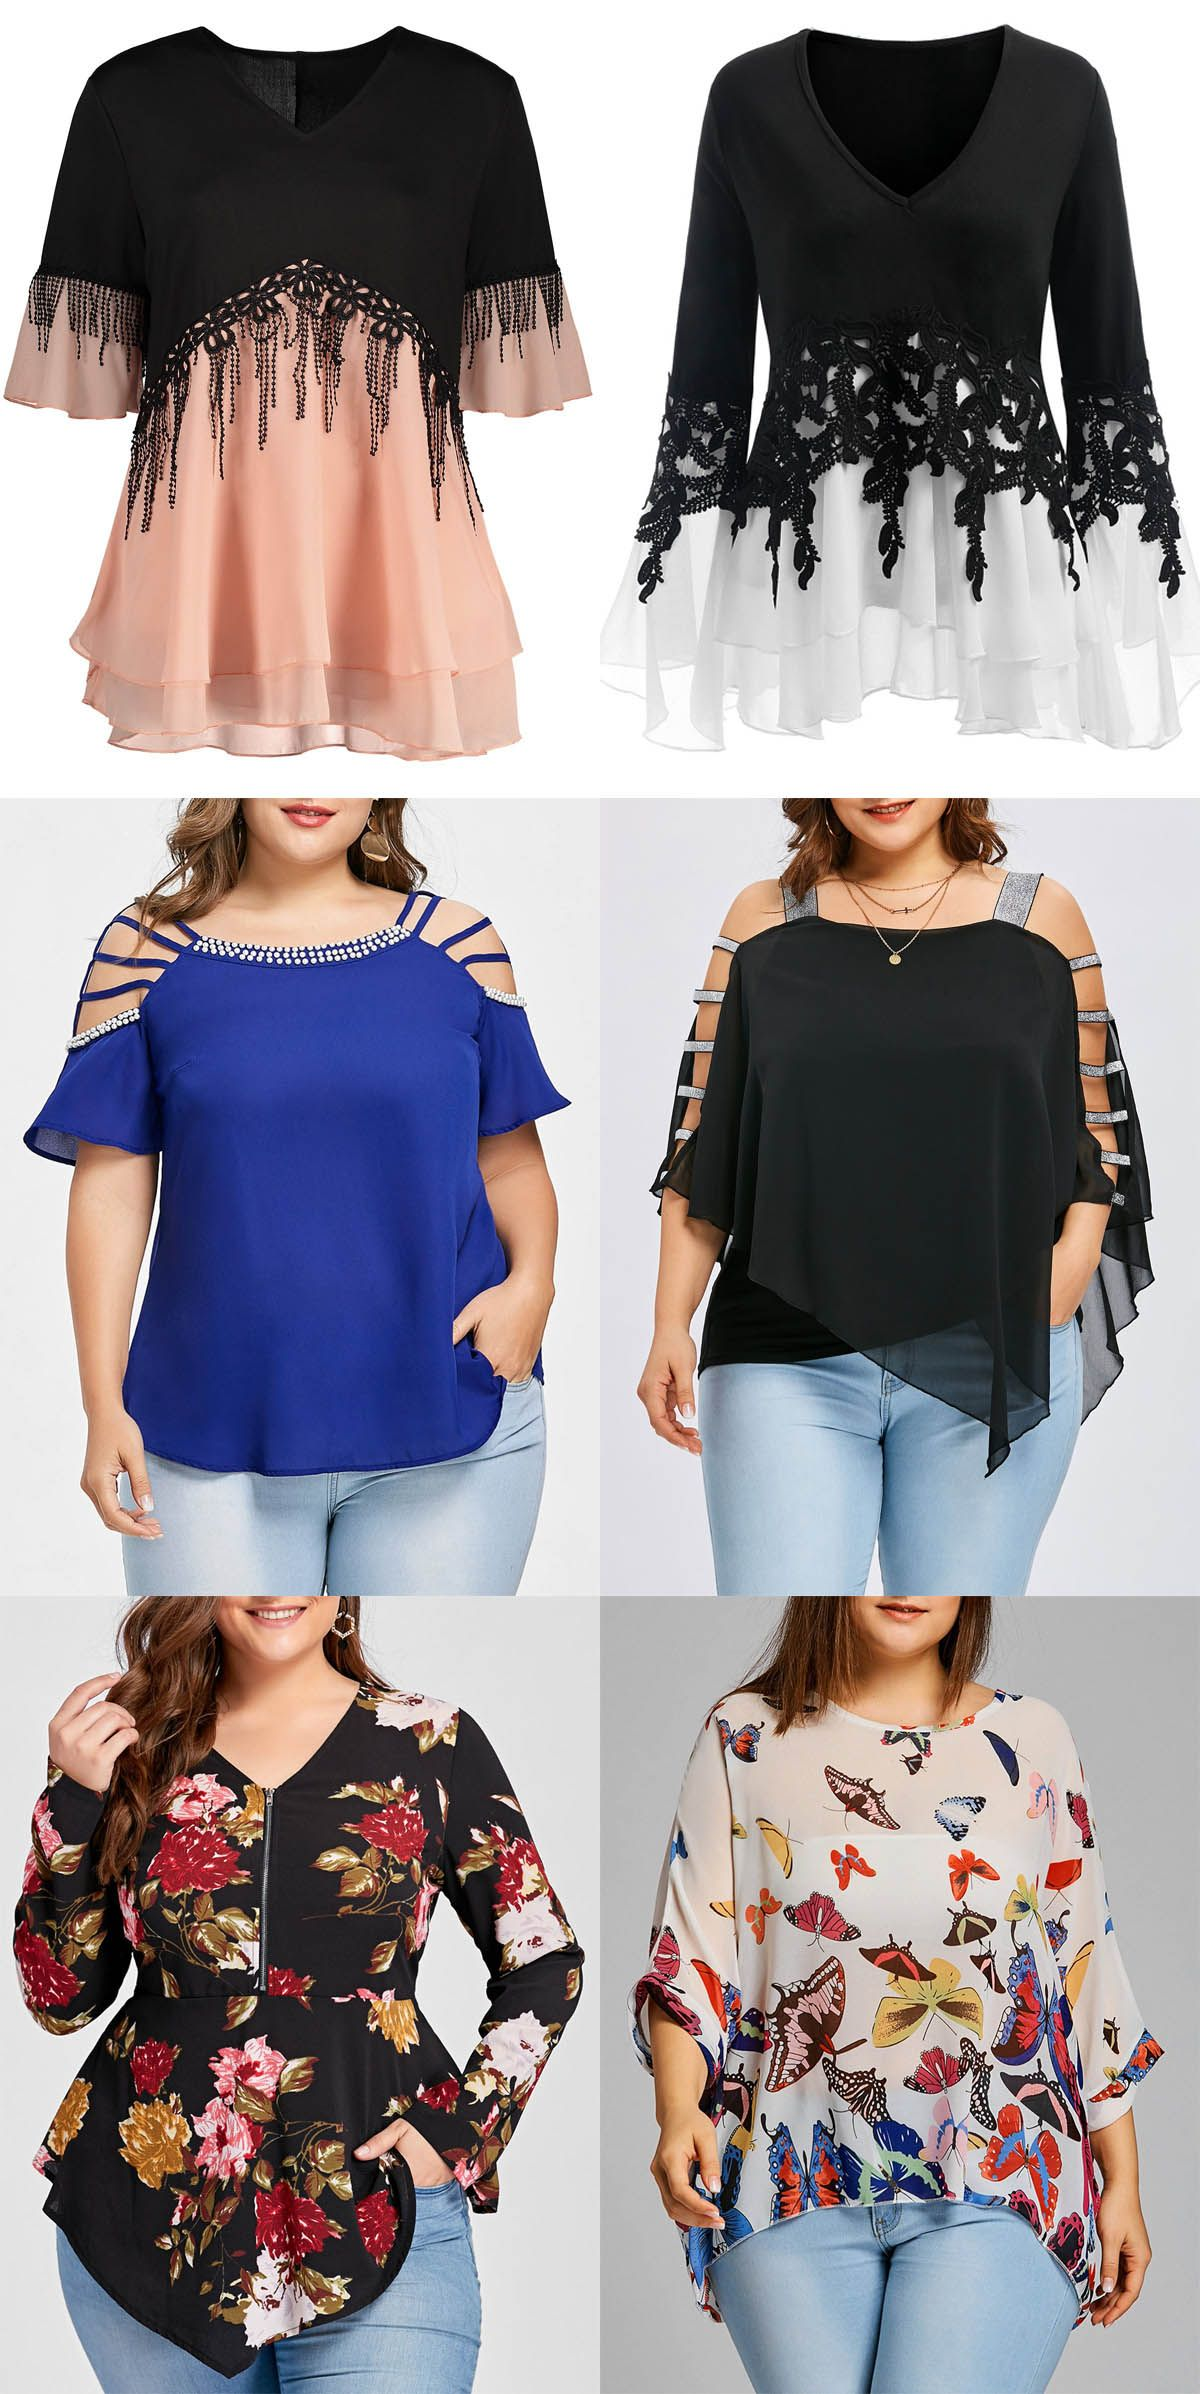 88a7b4d2ca01f Rosegal plus size blouses spring summer outfits for women